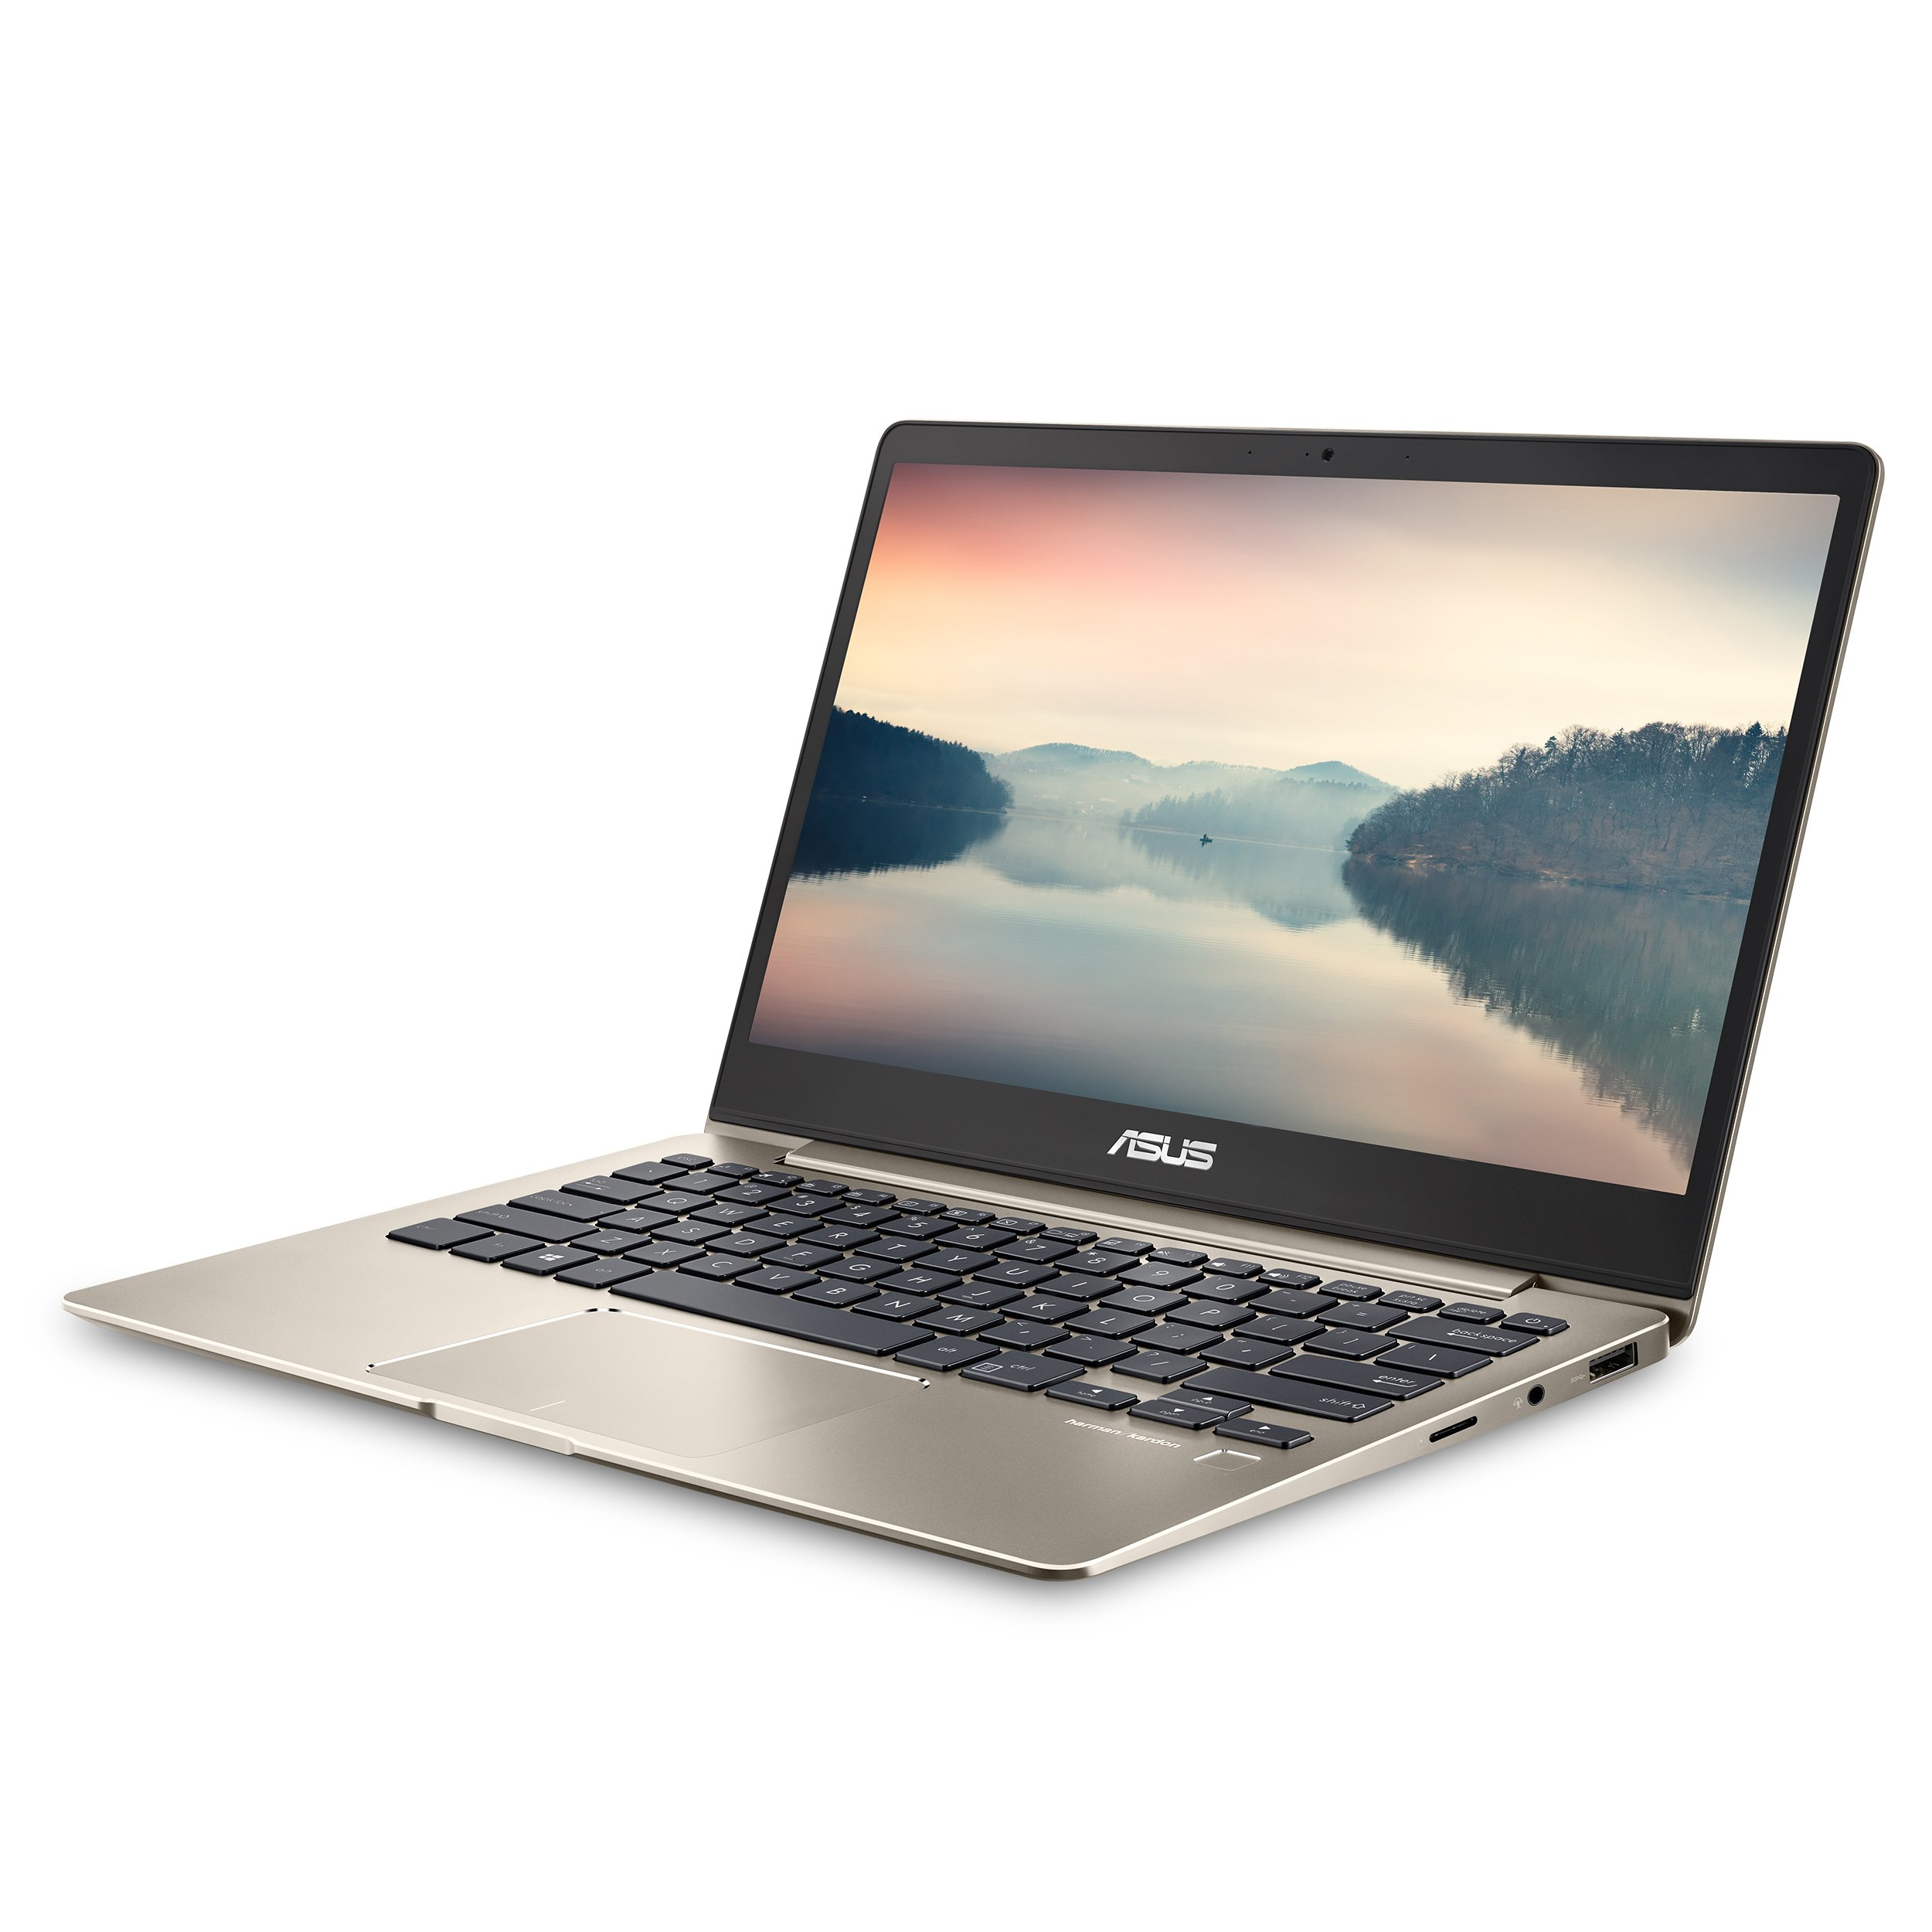 ASUS ZenBook 13 Ultra-Slim Laptop 13.3'' FHD Display, Intel 8th gen Core i5-8250U, 8GB RAM, 256GB M.2 SSD, Win10, Backlit KB, FP, Icicle Gold, UX331UA-AS51 by ASUS (Image #1)